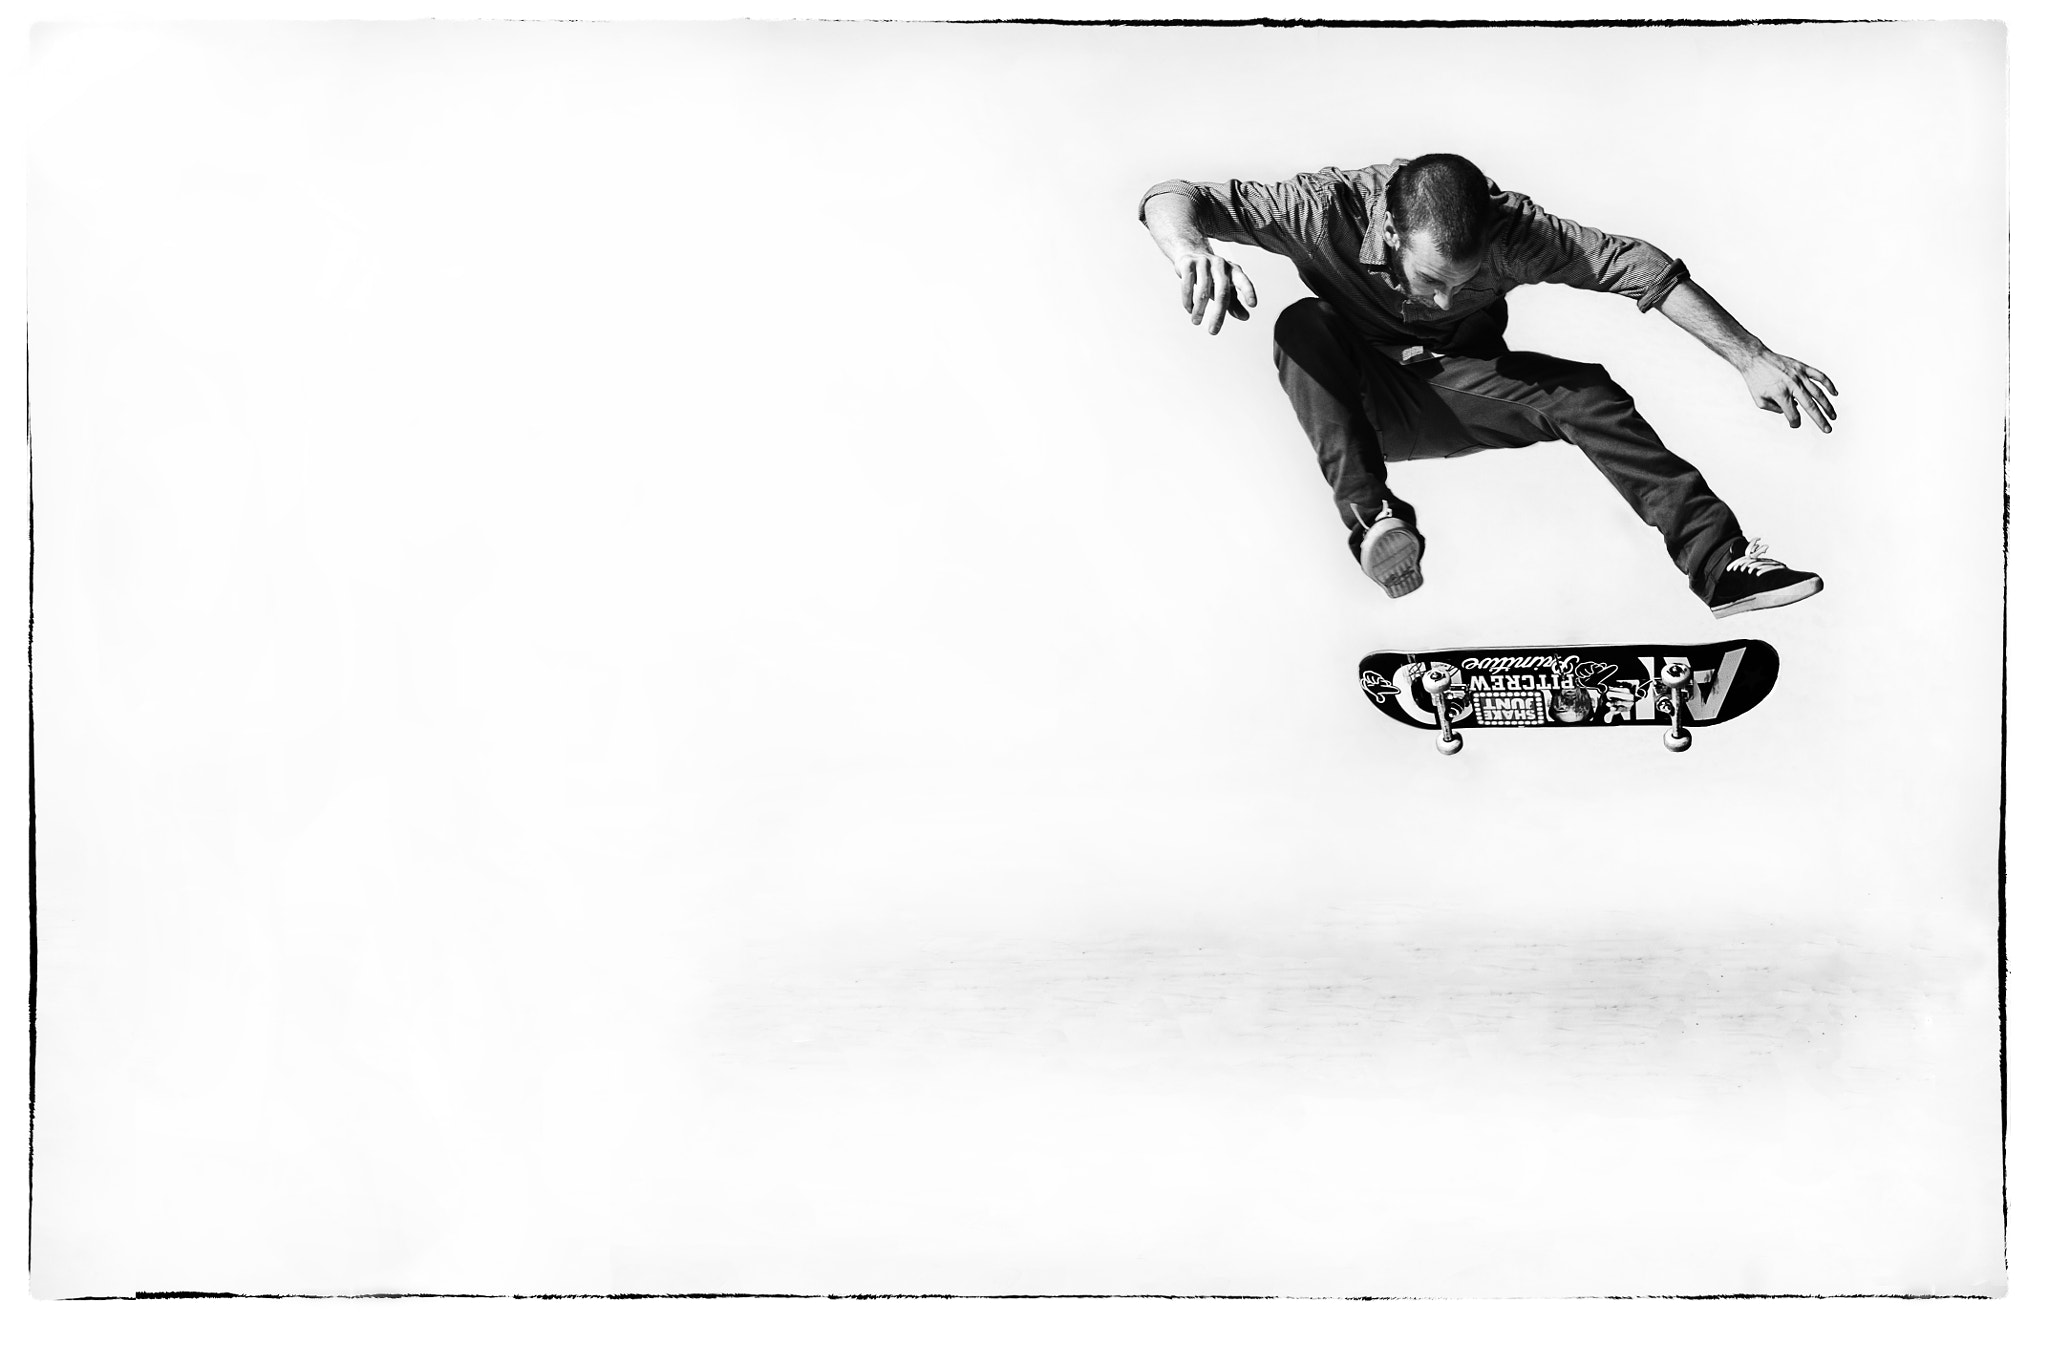 Photograph Charley @ heelflip by Louis Caya on 500px